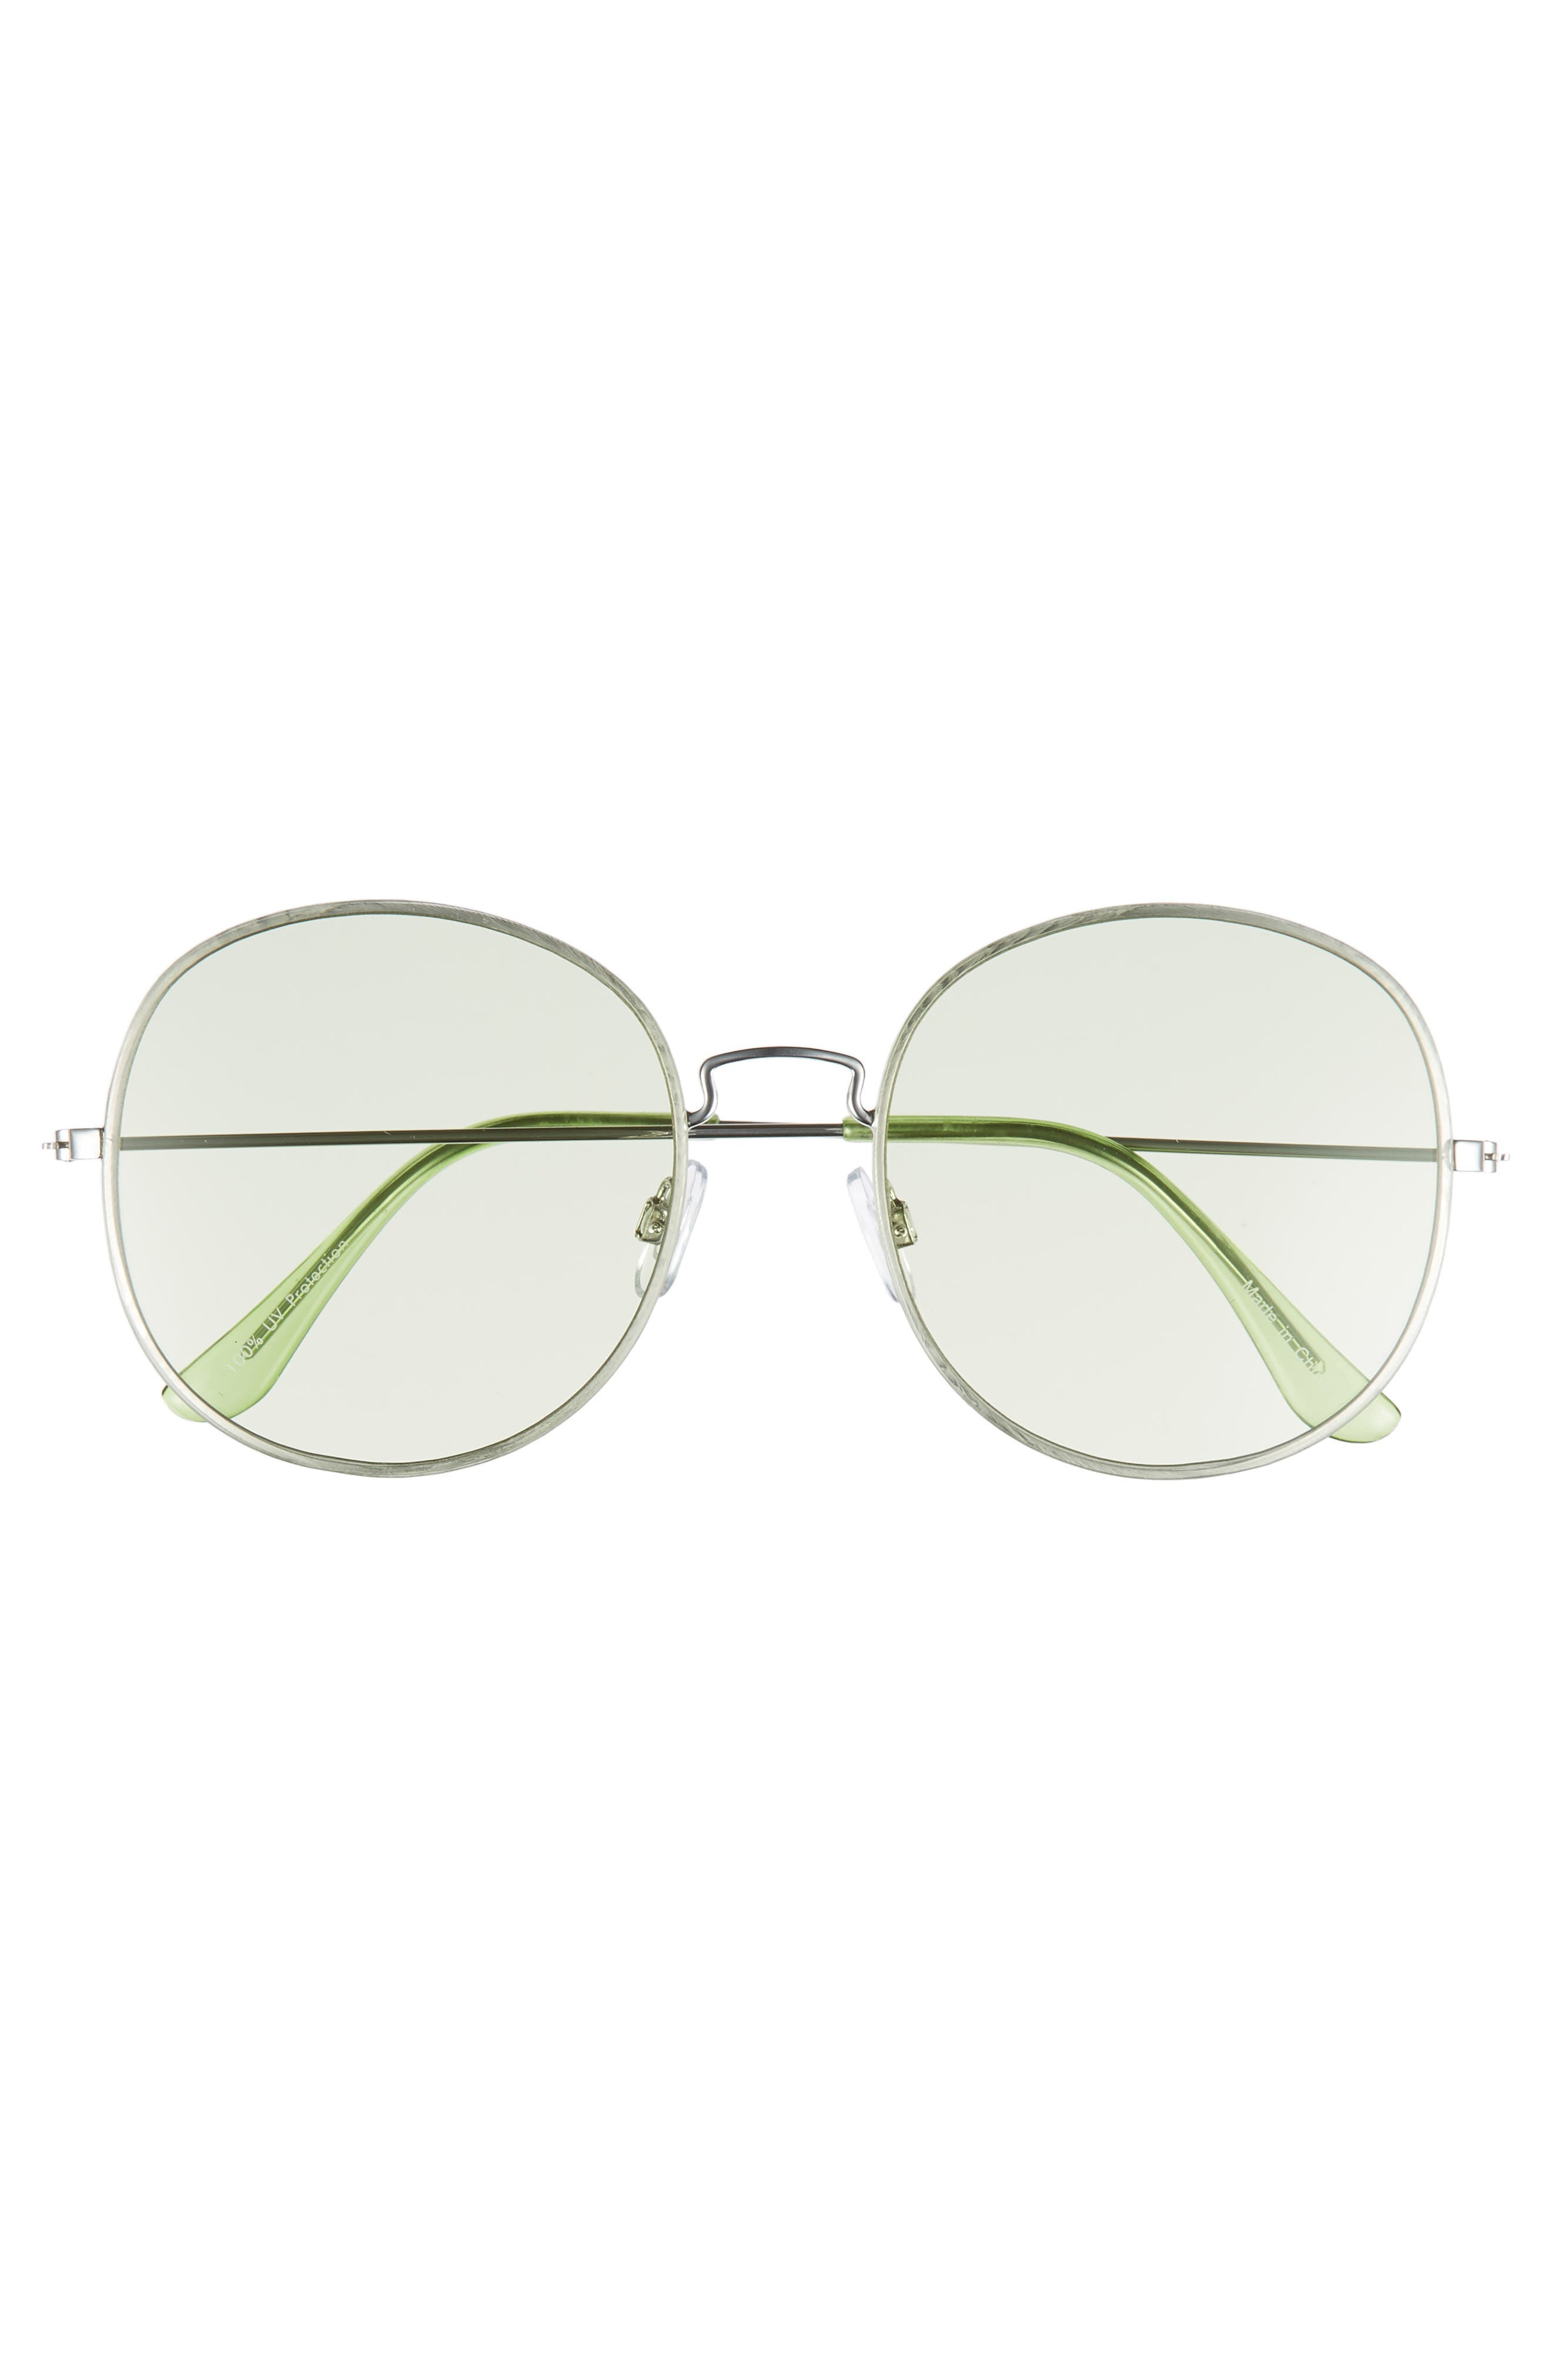 57mm Flat Round Sunglasses,                             Alternate thumbnail 3, color,                             Green